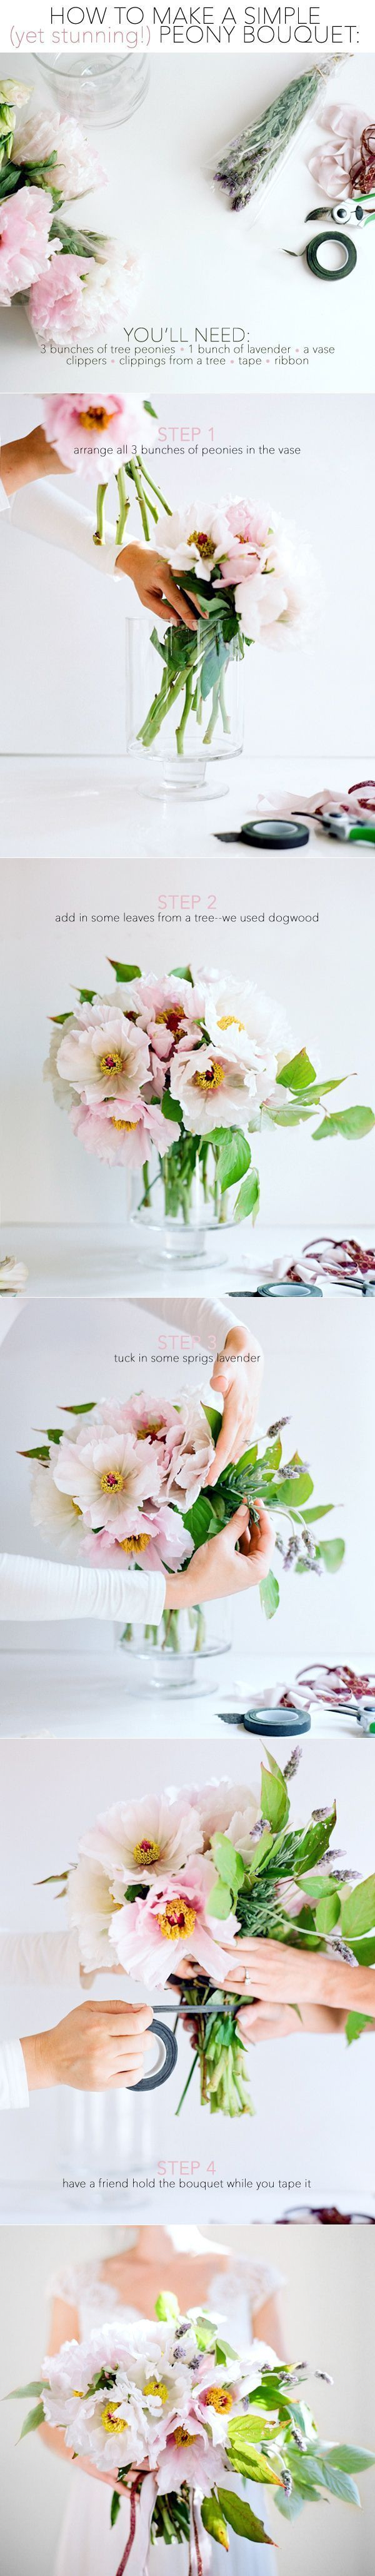 How To Make A Peony Bouquet